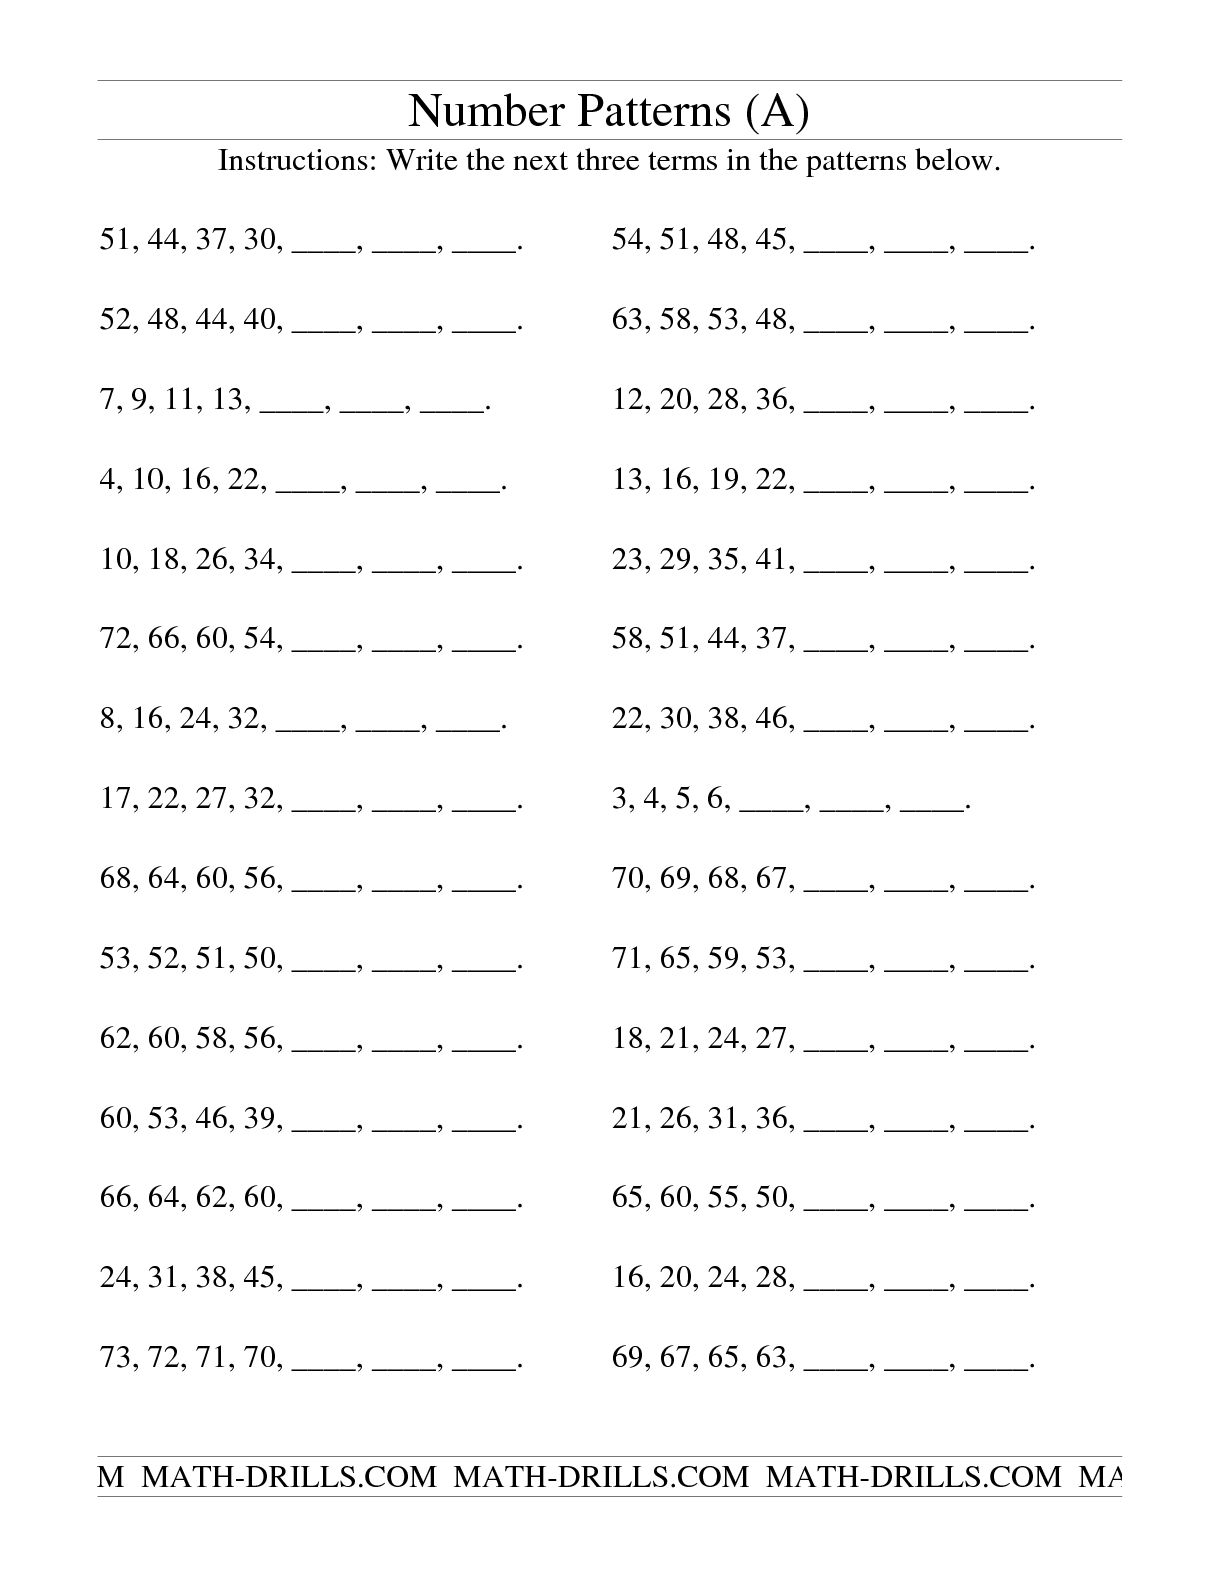 Number Sequence Worksheet 5th Grade